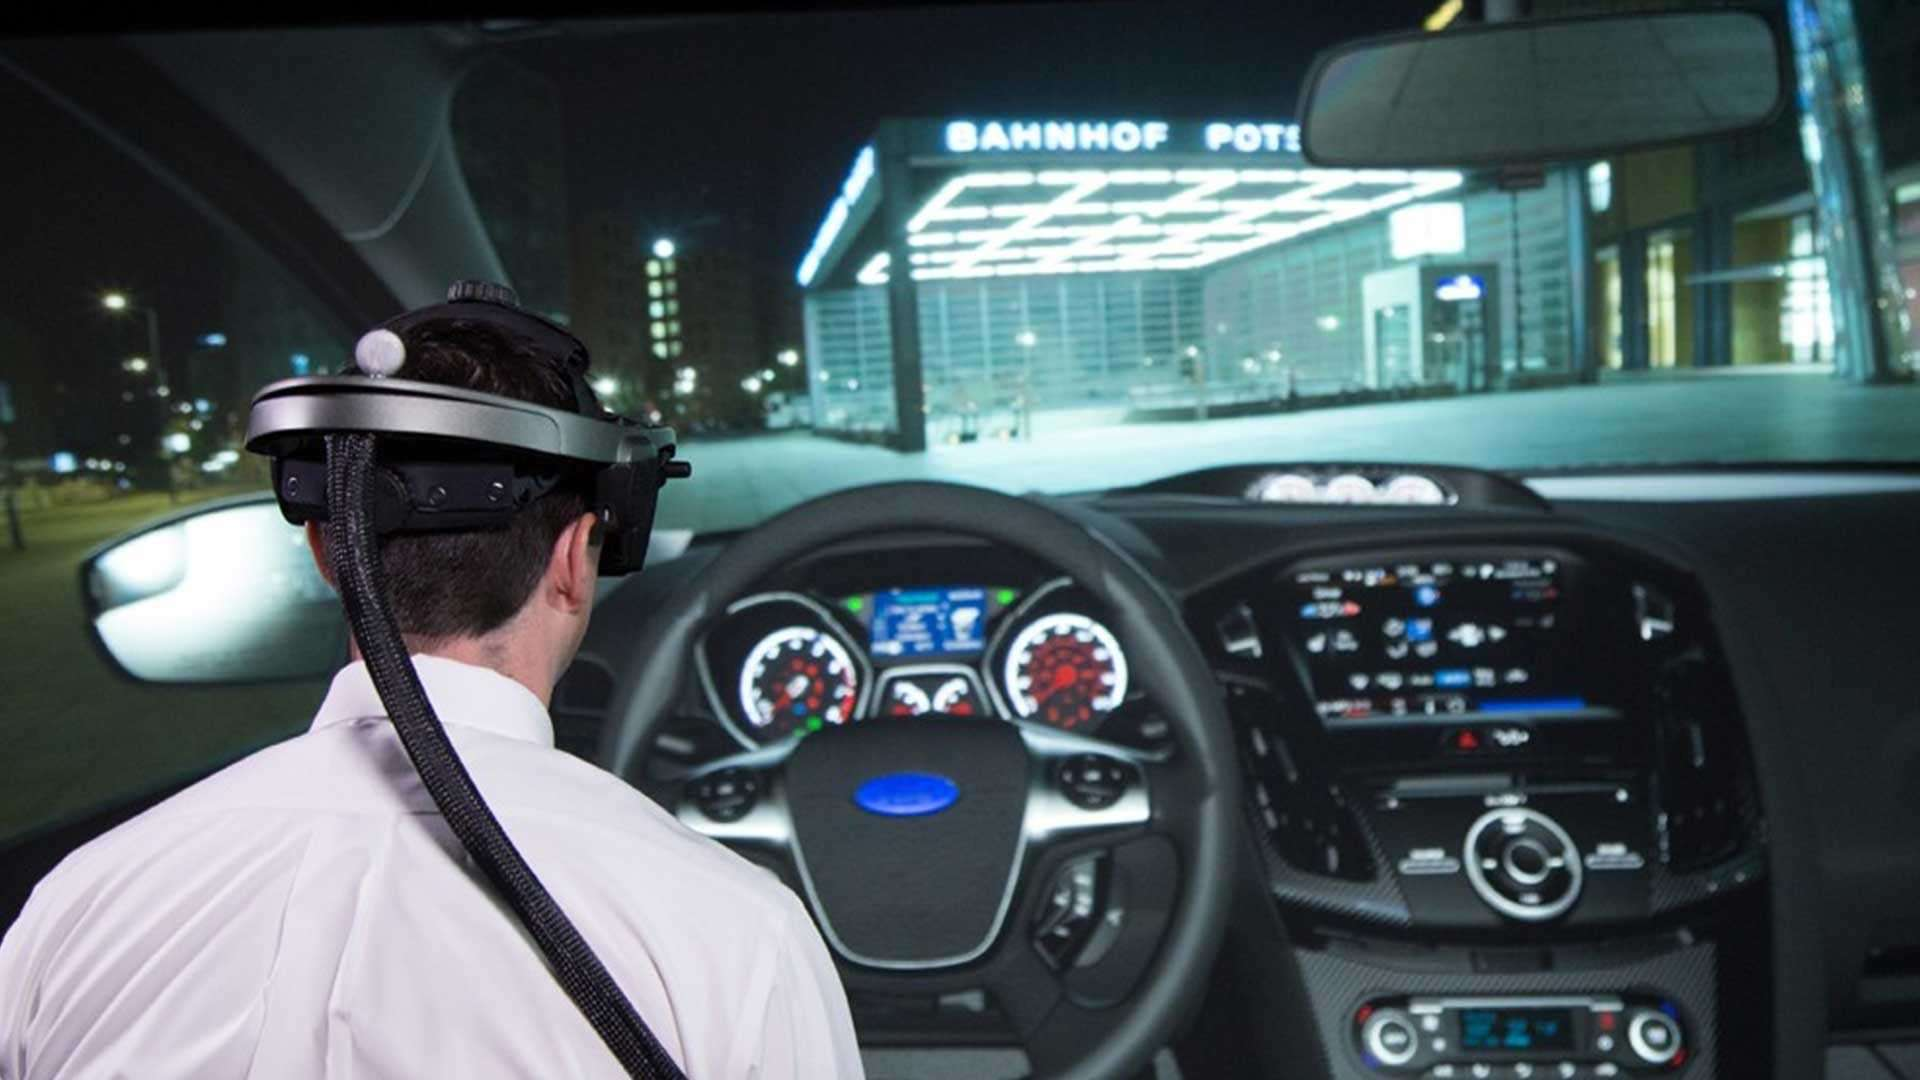 Ford is using virtual reality to evaluate car components in its VR lab